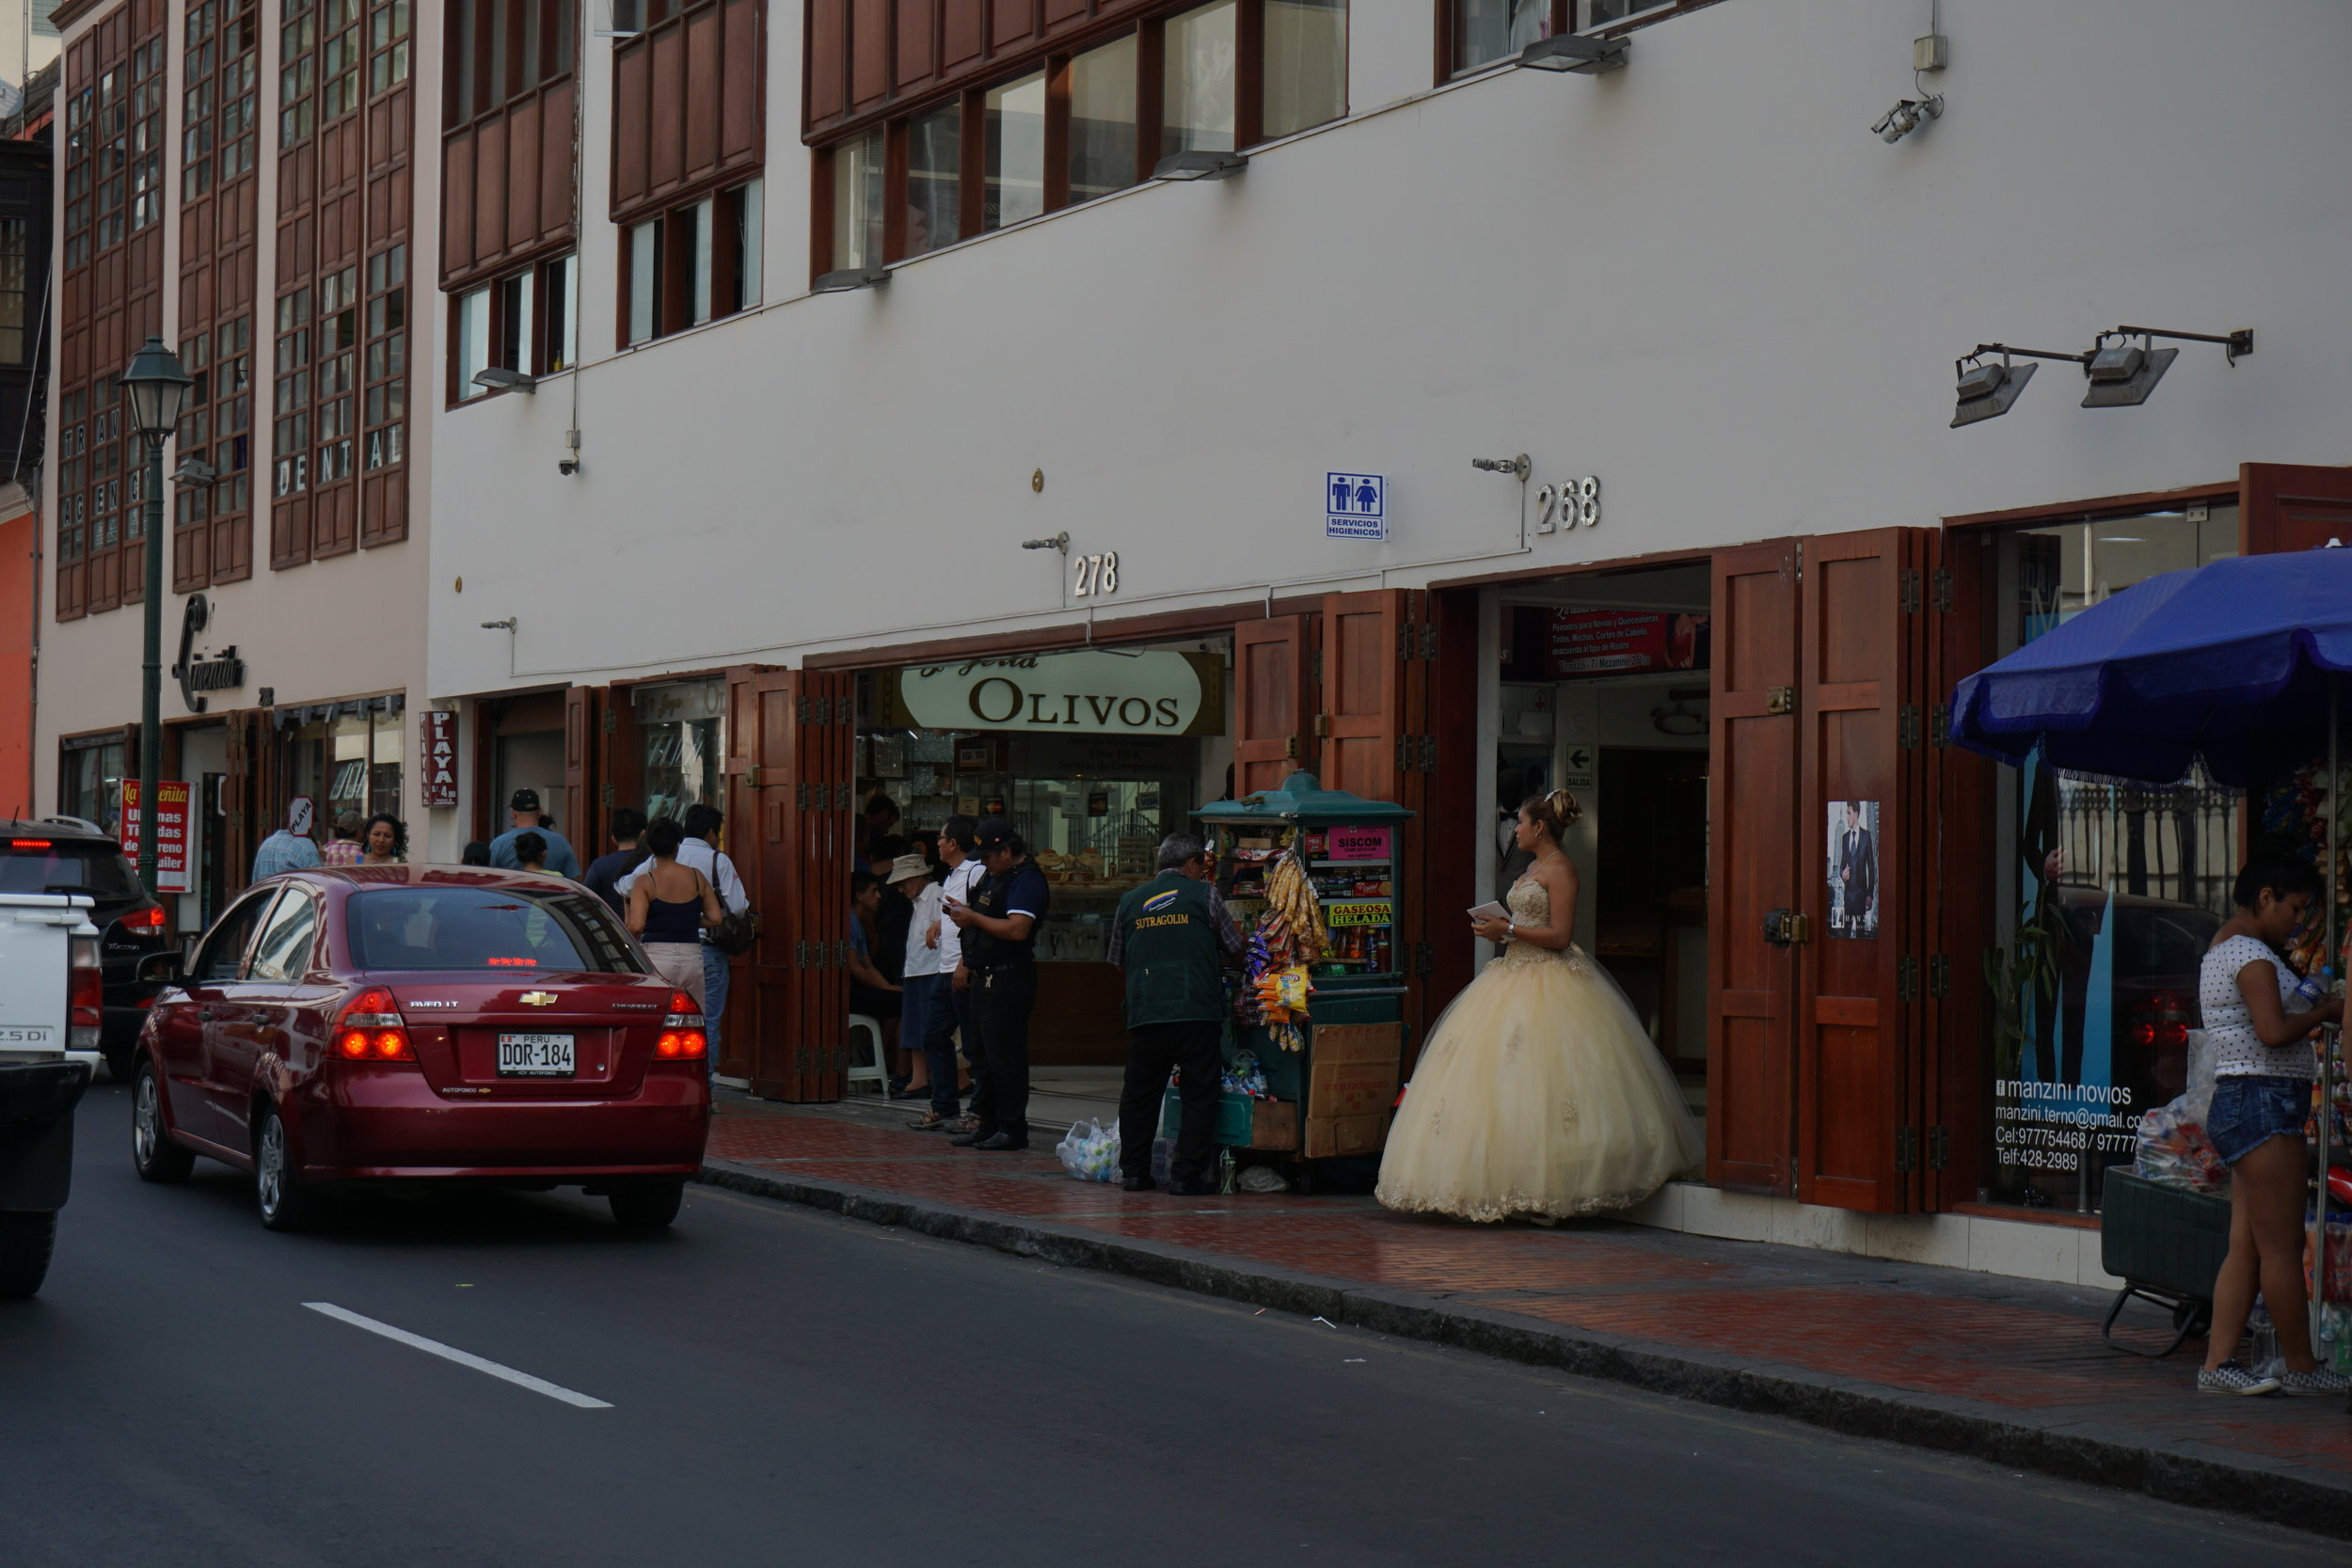 The odd sight of a vendor dressed as a princess amid the hustle and bustle of Lima's central district.